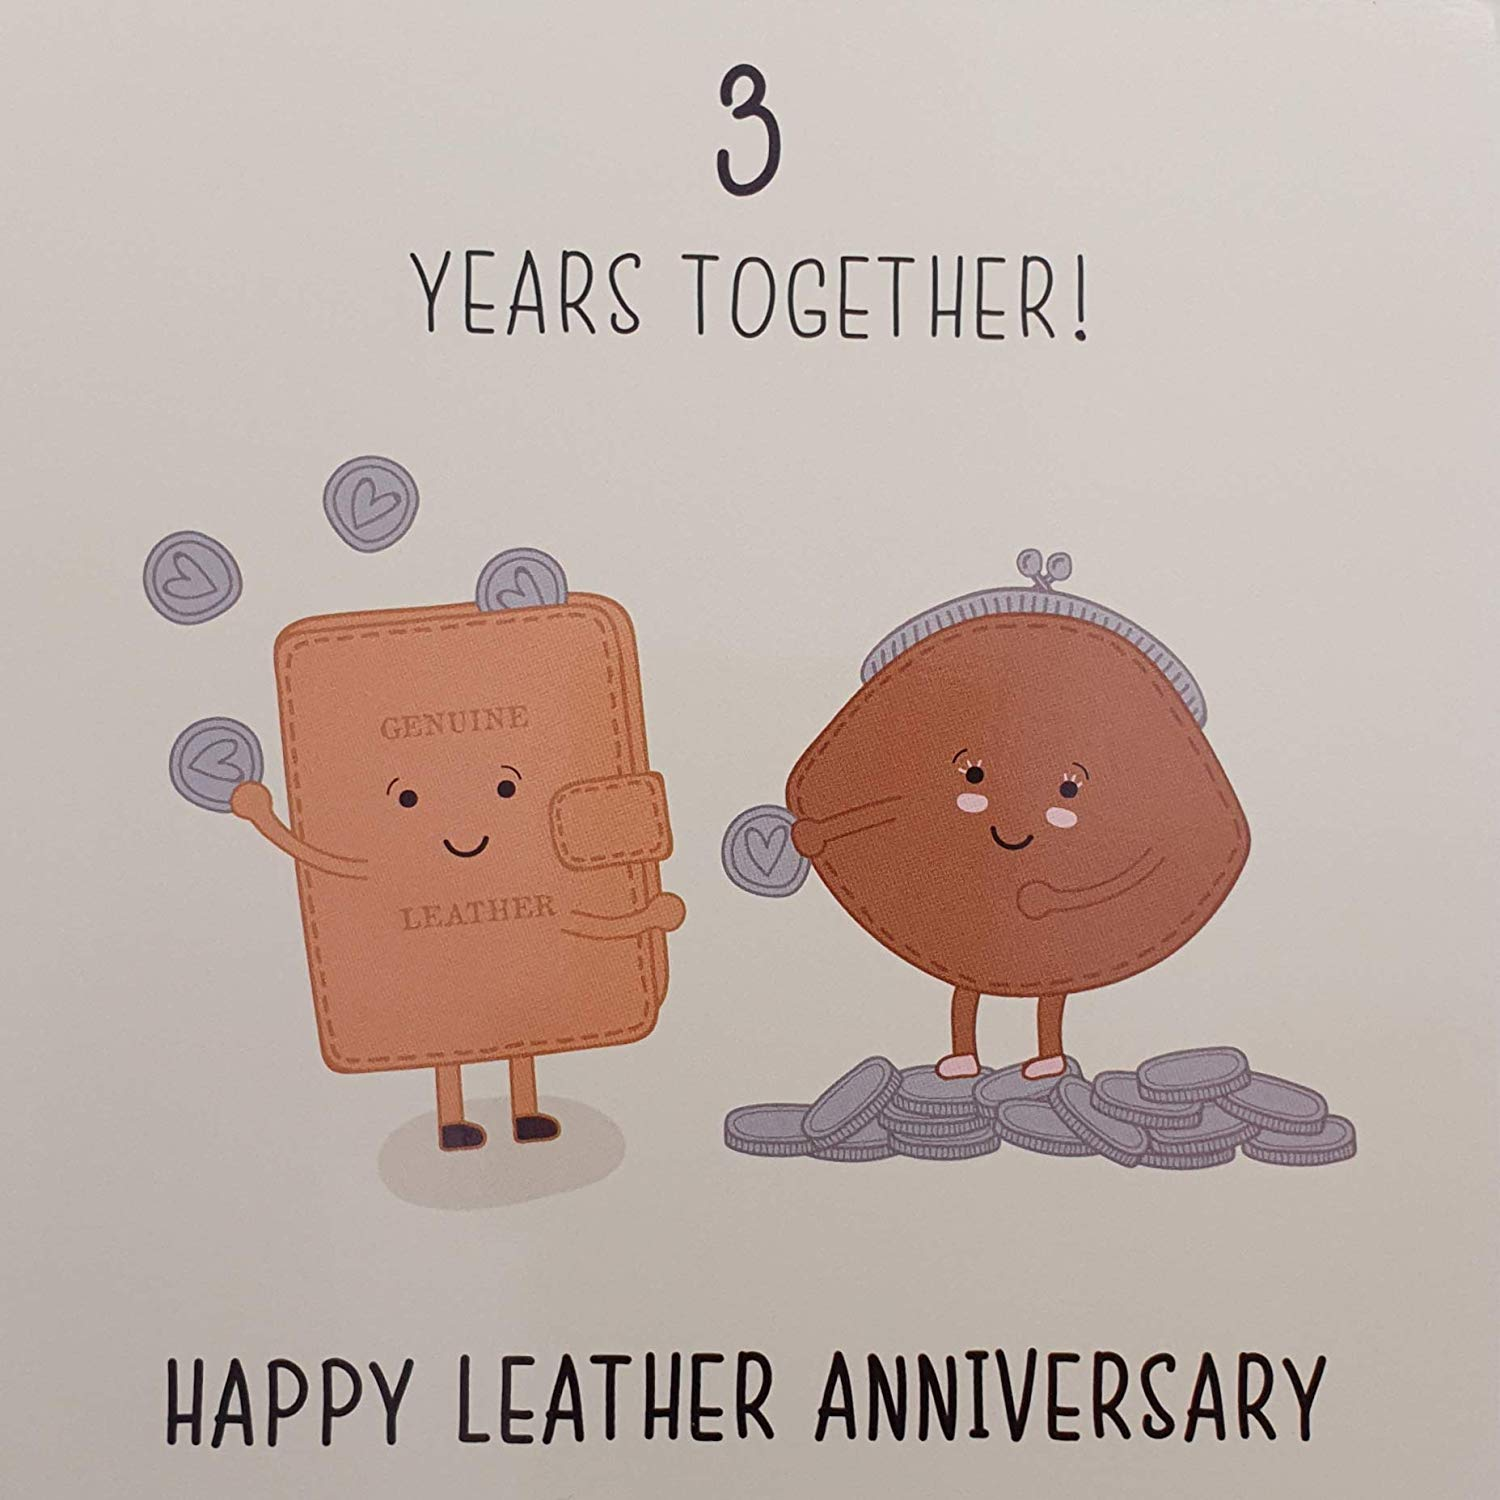 3rd Wedding Anniversary Card - Leather Anniversary